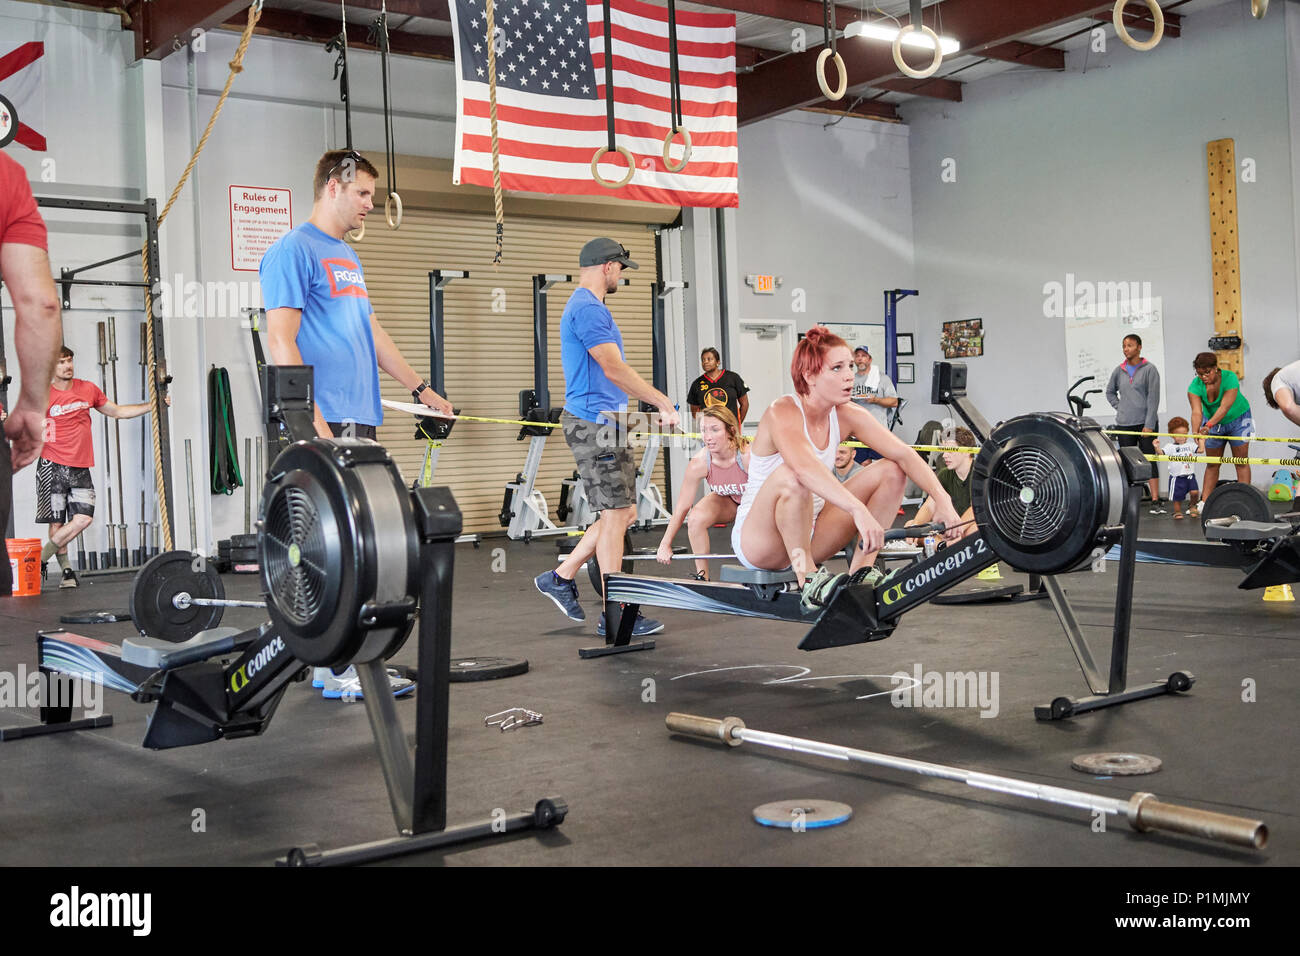 Female or woman competing in a CrossFit fitness challenge competition by using a rowing machine to exhaustion inside a gym in Montgomery Alabama, USA. - Stock Image